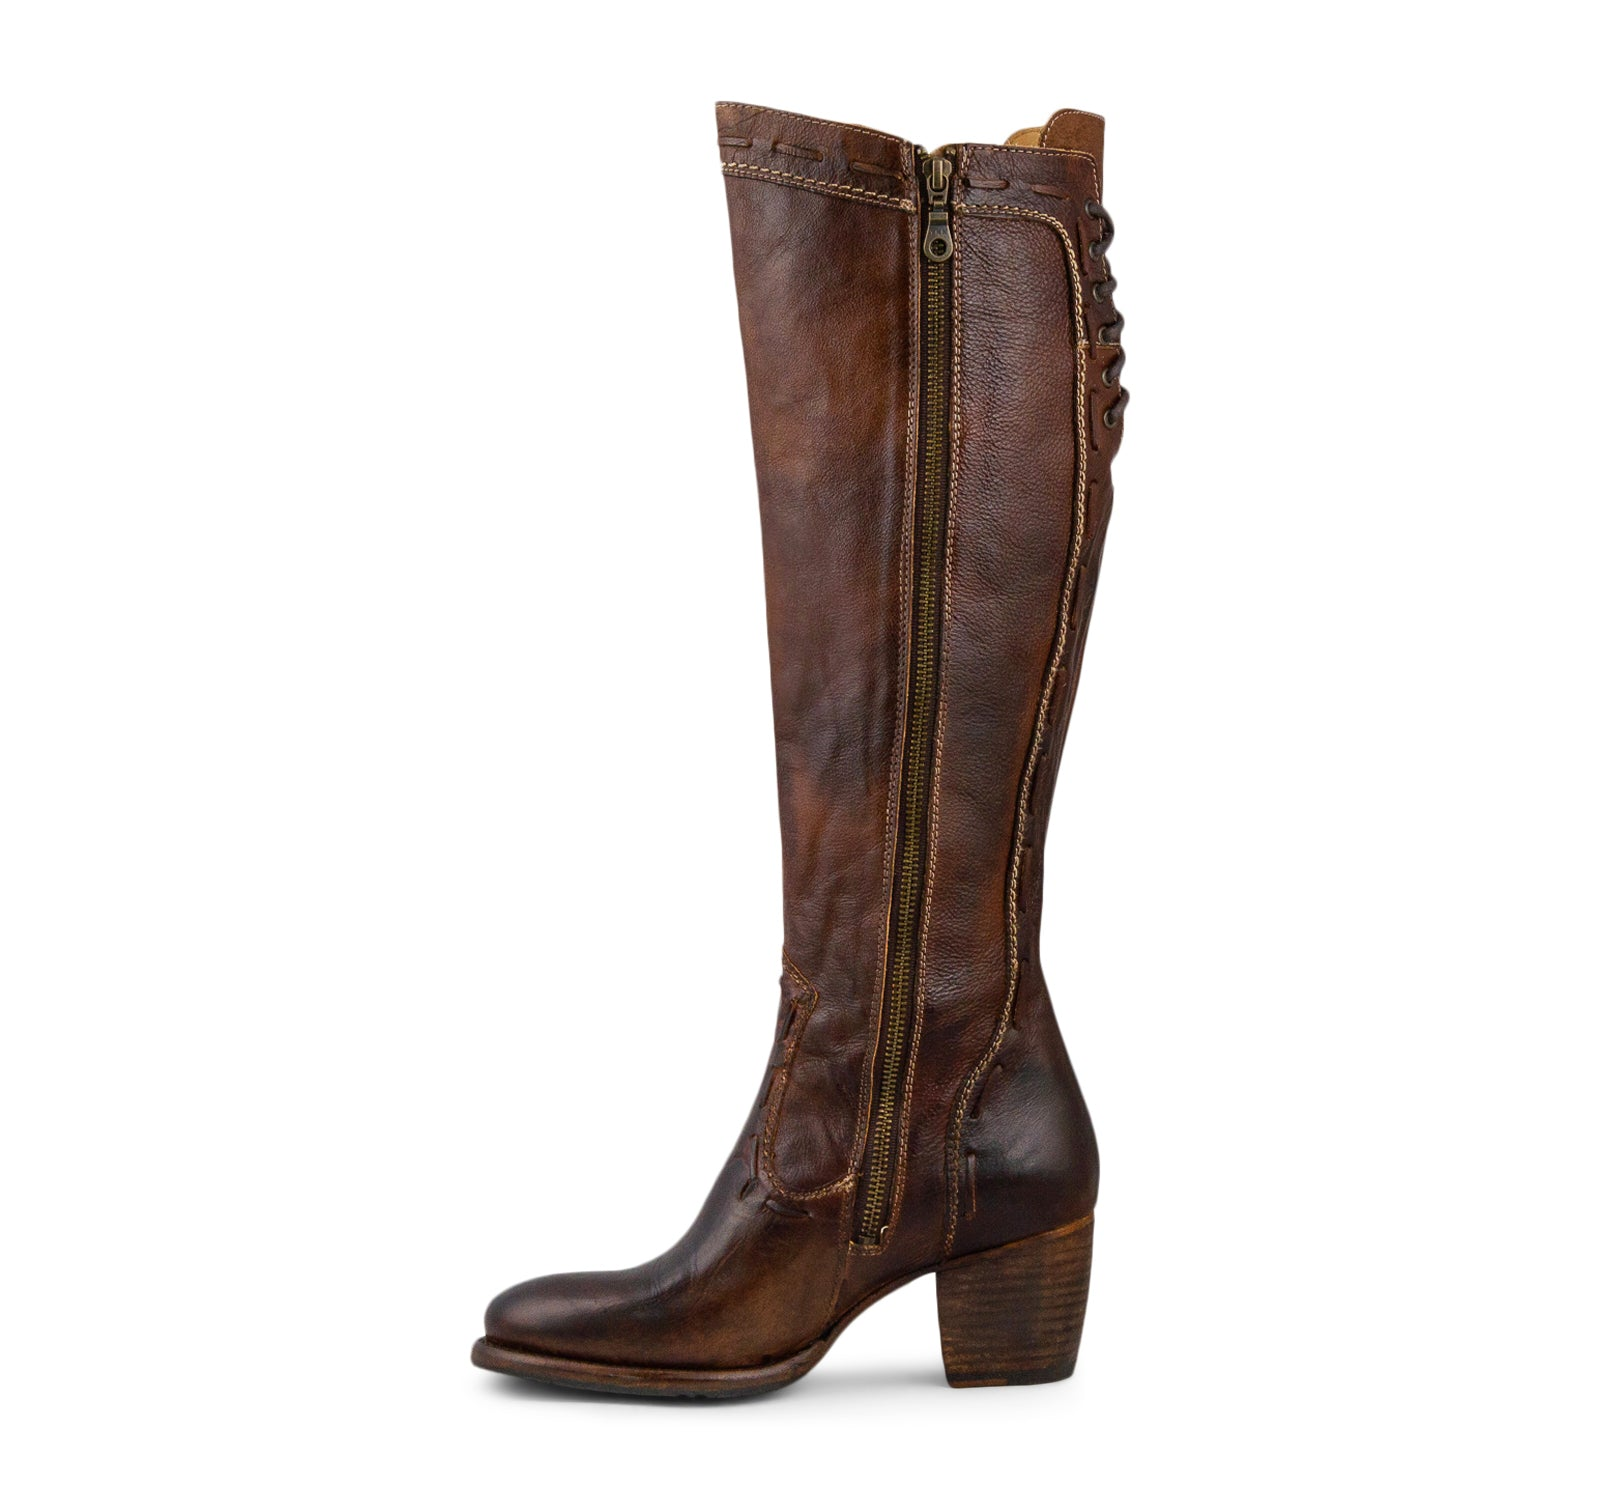 Bed Stu Fortune Women S Tall Boot In Teak Rustic On The Edge